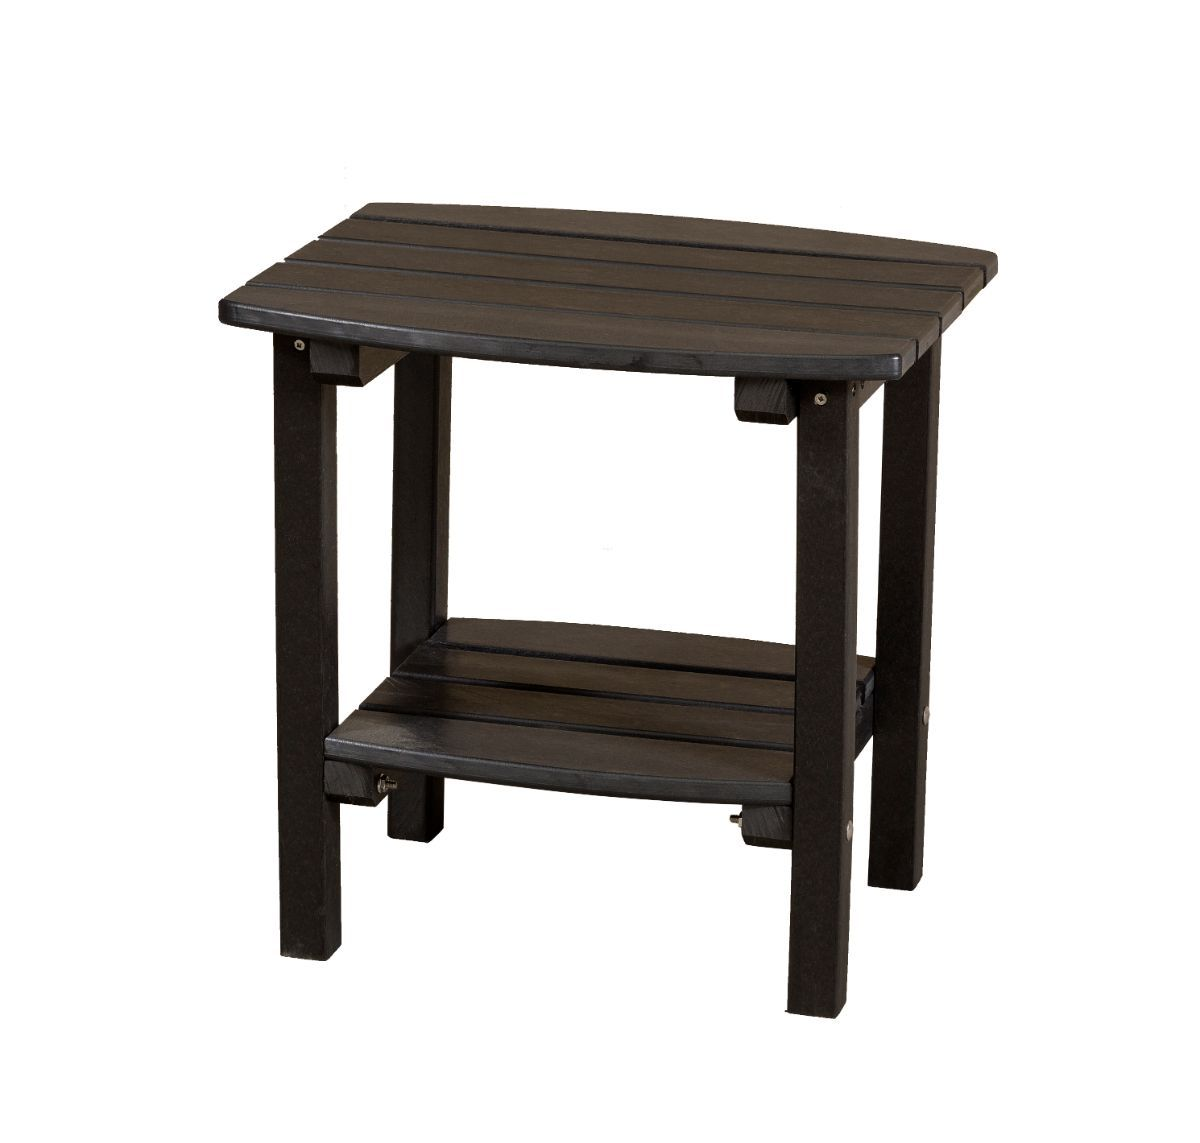 Black Odessa Small Outdoor Side Table